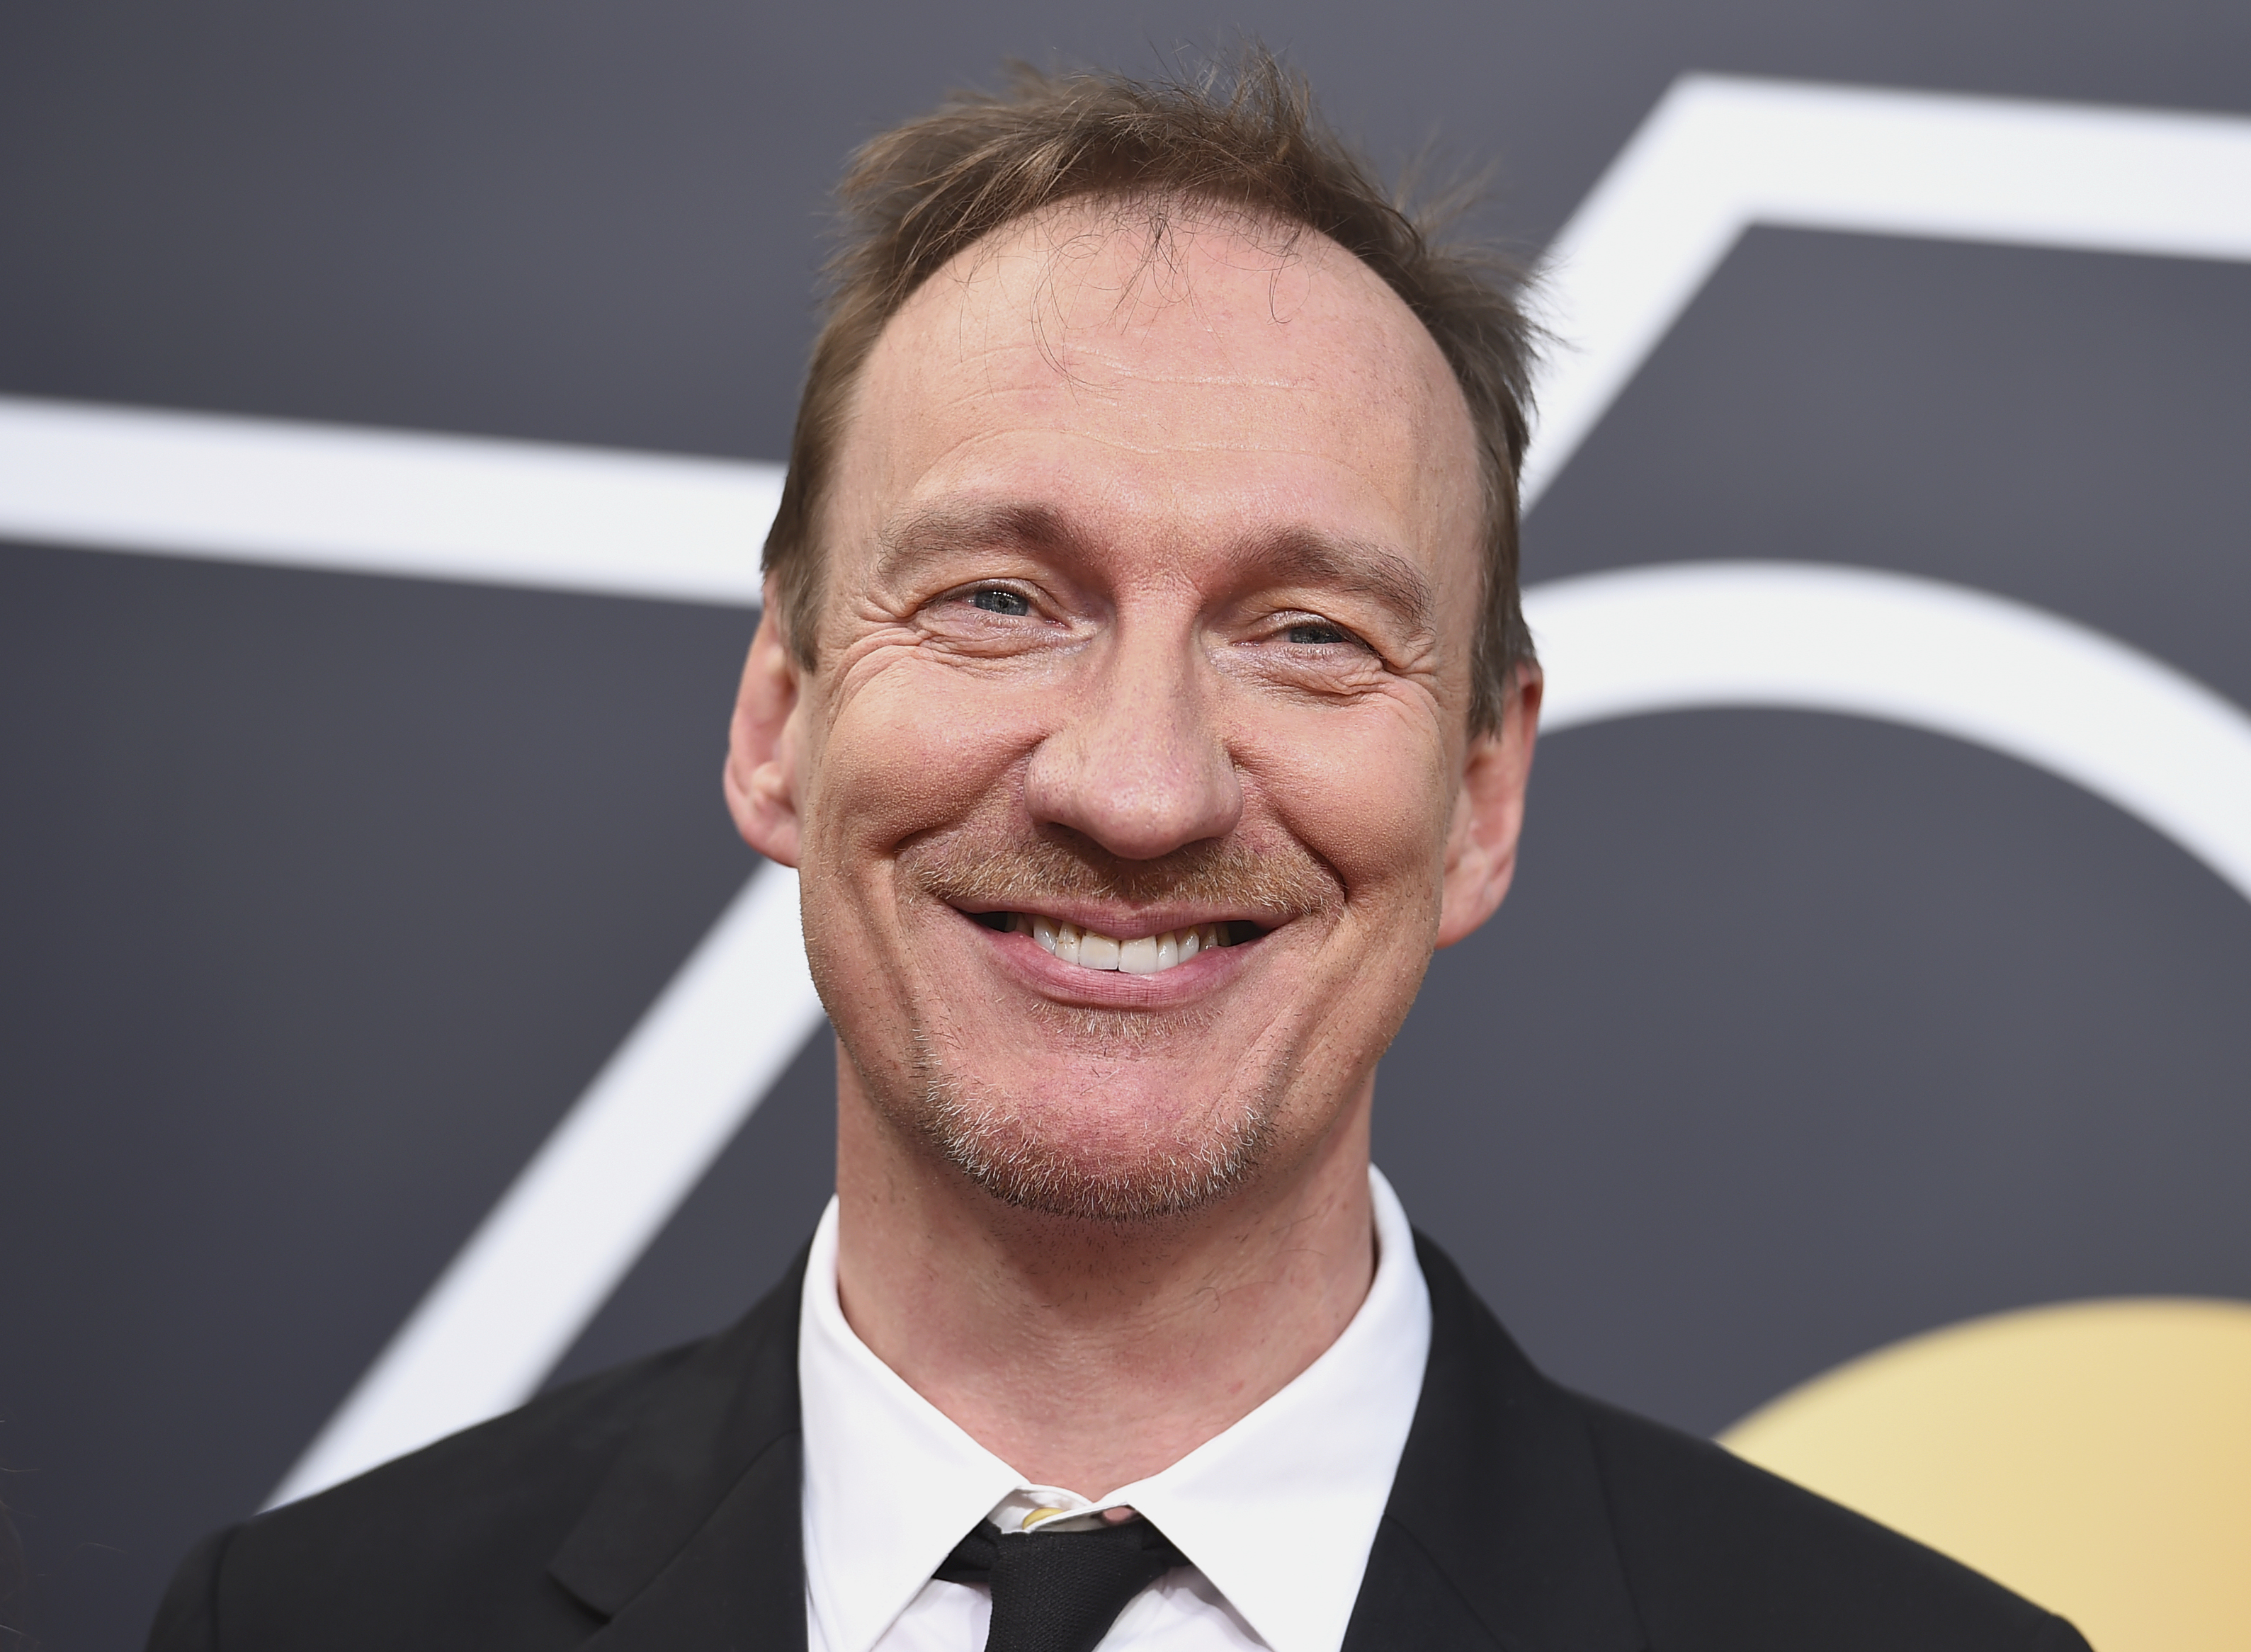 David Thewlis arriving at the ceremony